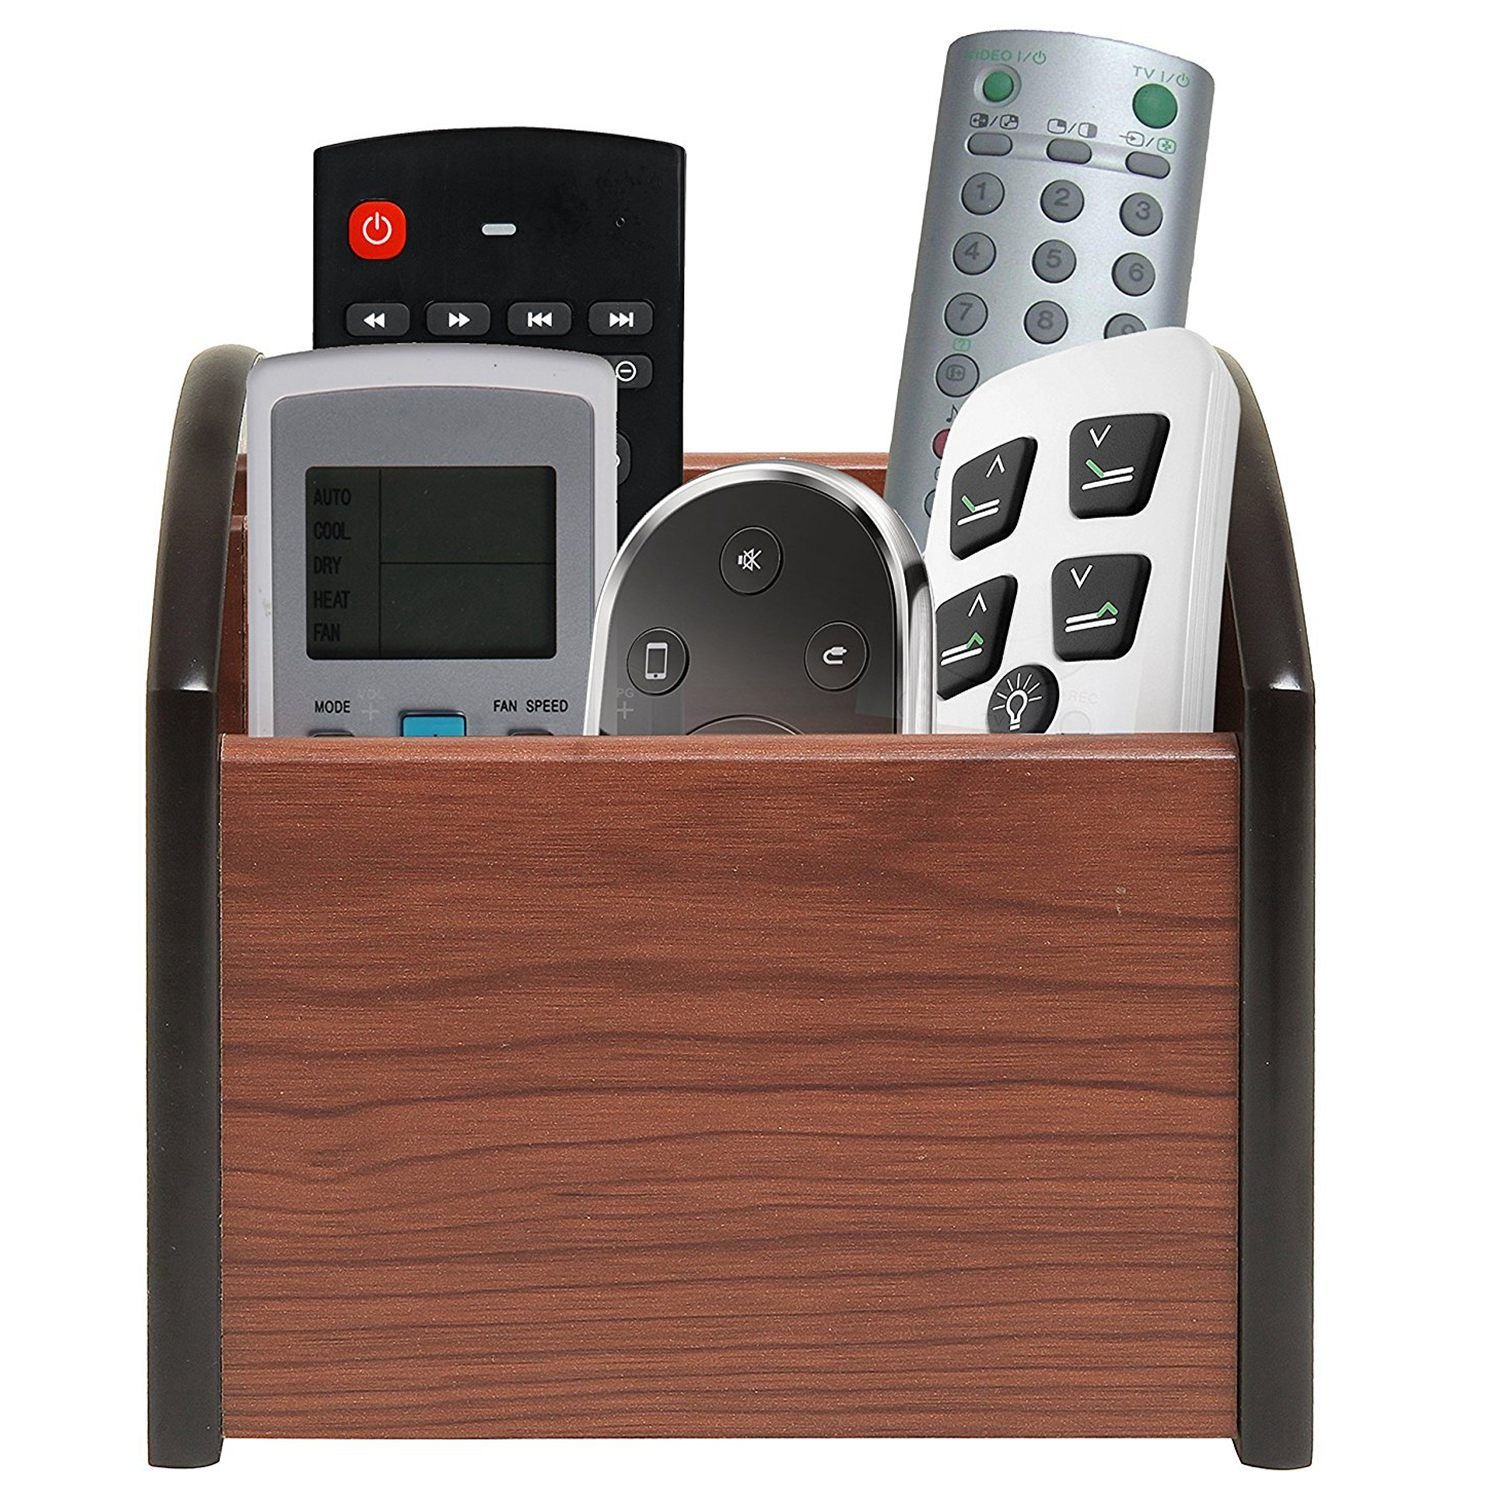 Nrpfell Revolving Wooden 4 Compartment Desktop Office Supplies Storage Organizer/Spinning Remote Control Caddy by Nrpfell (Image #3)